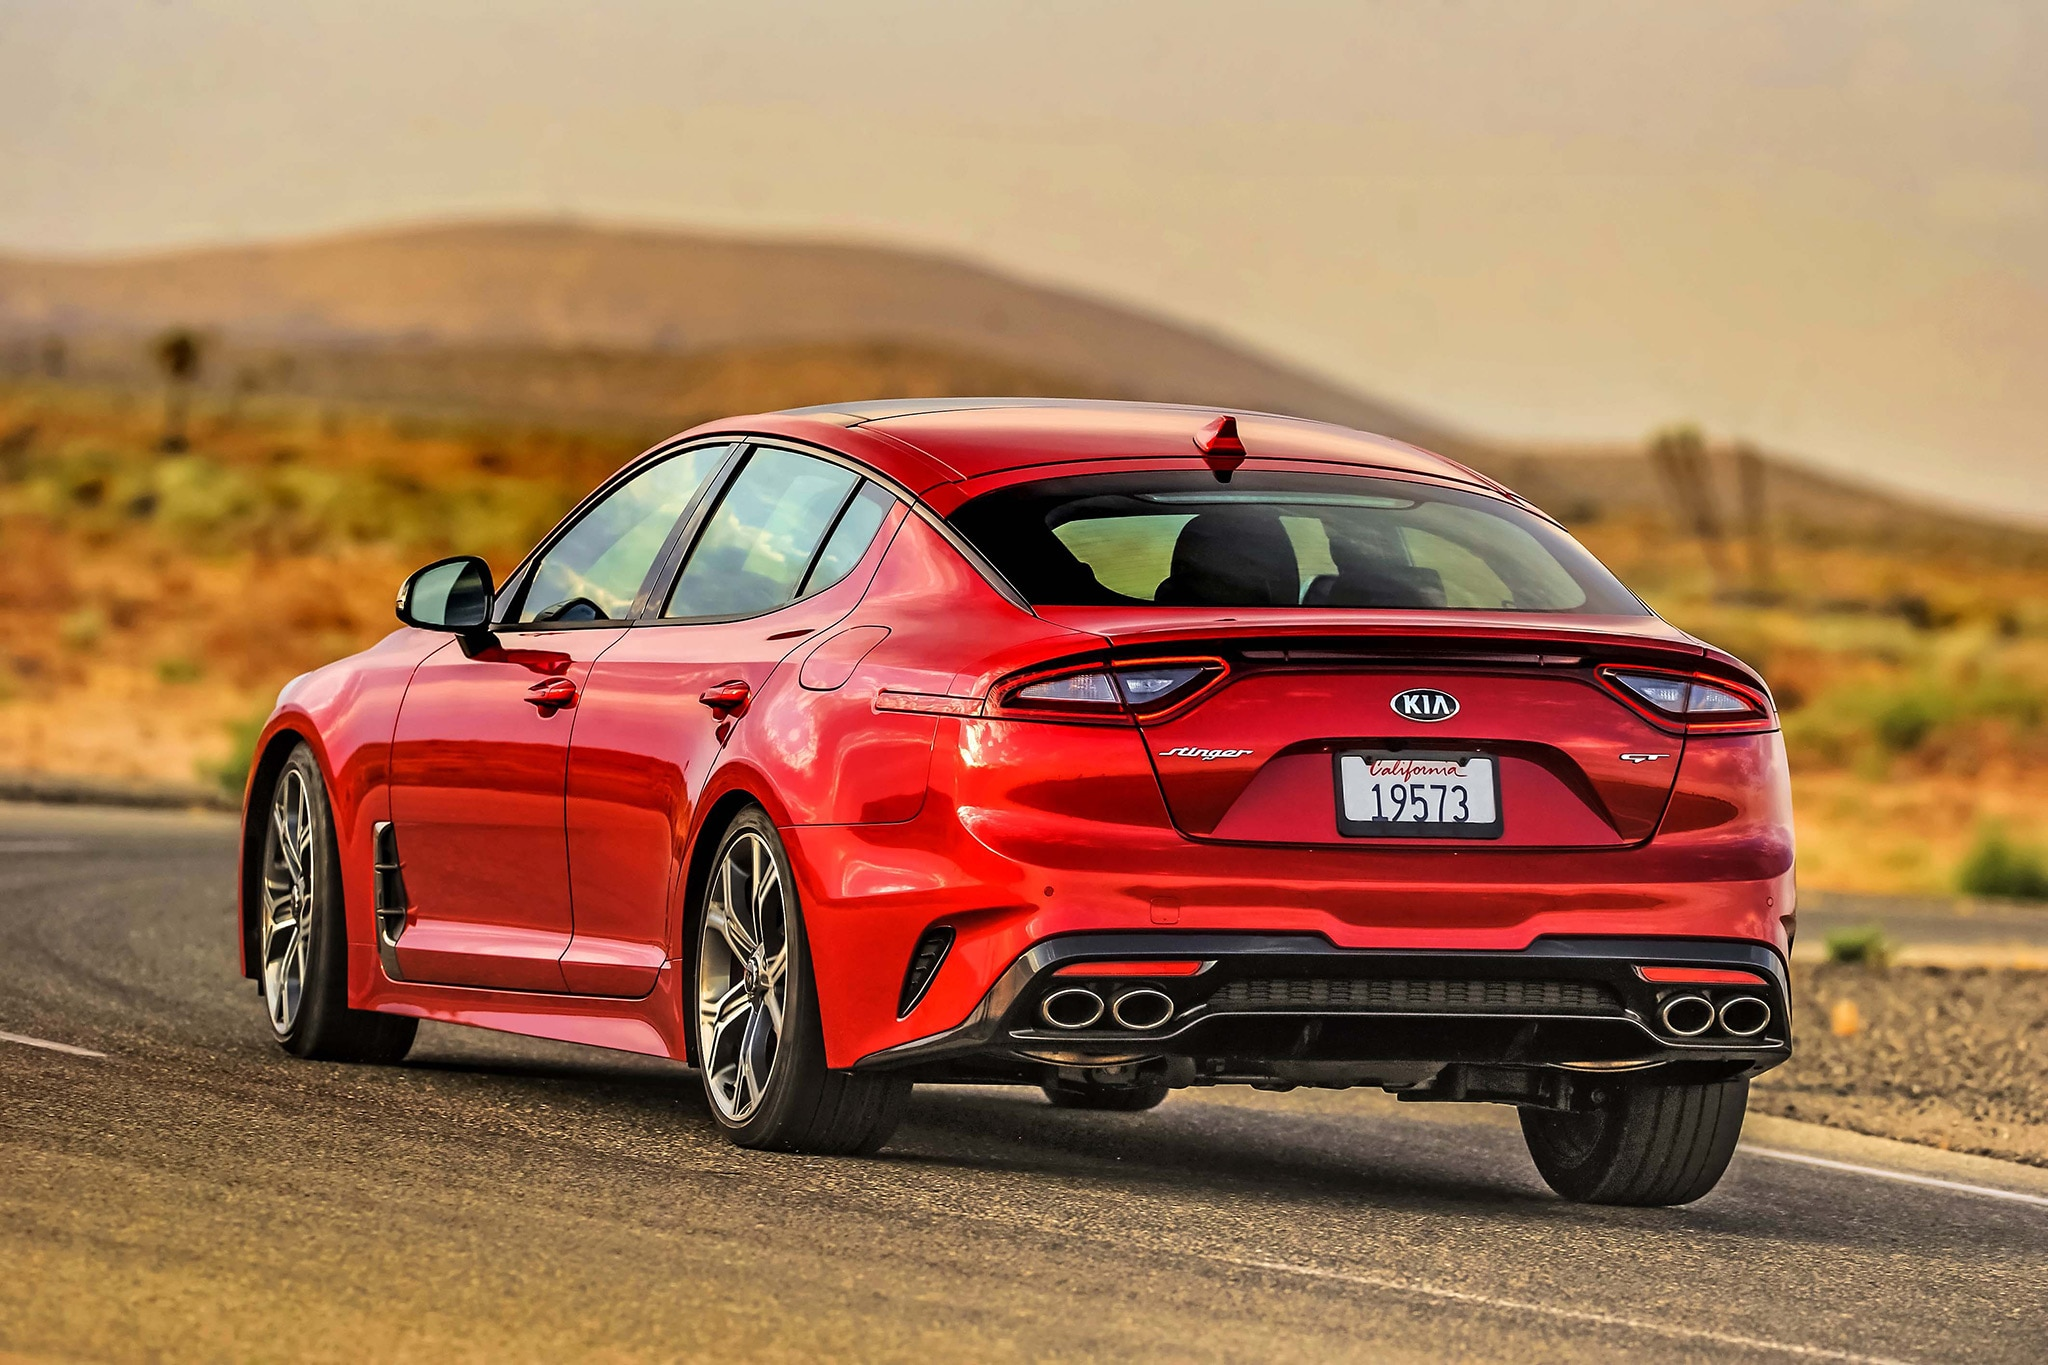 Kia Stinger Msrp >> 2018 Kia Stinger GT Quick Take Review | Automobile Magazine